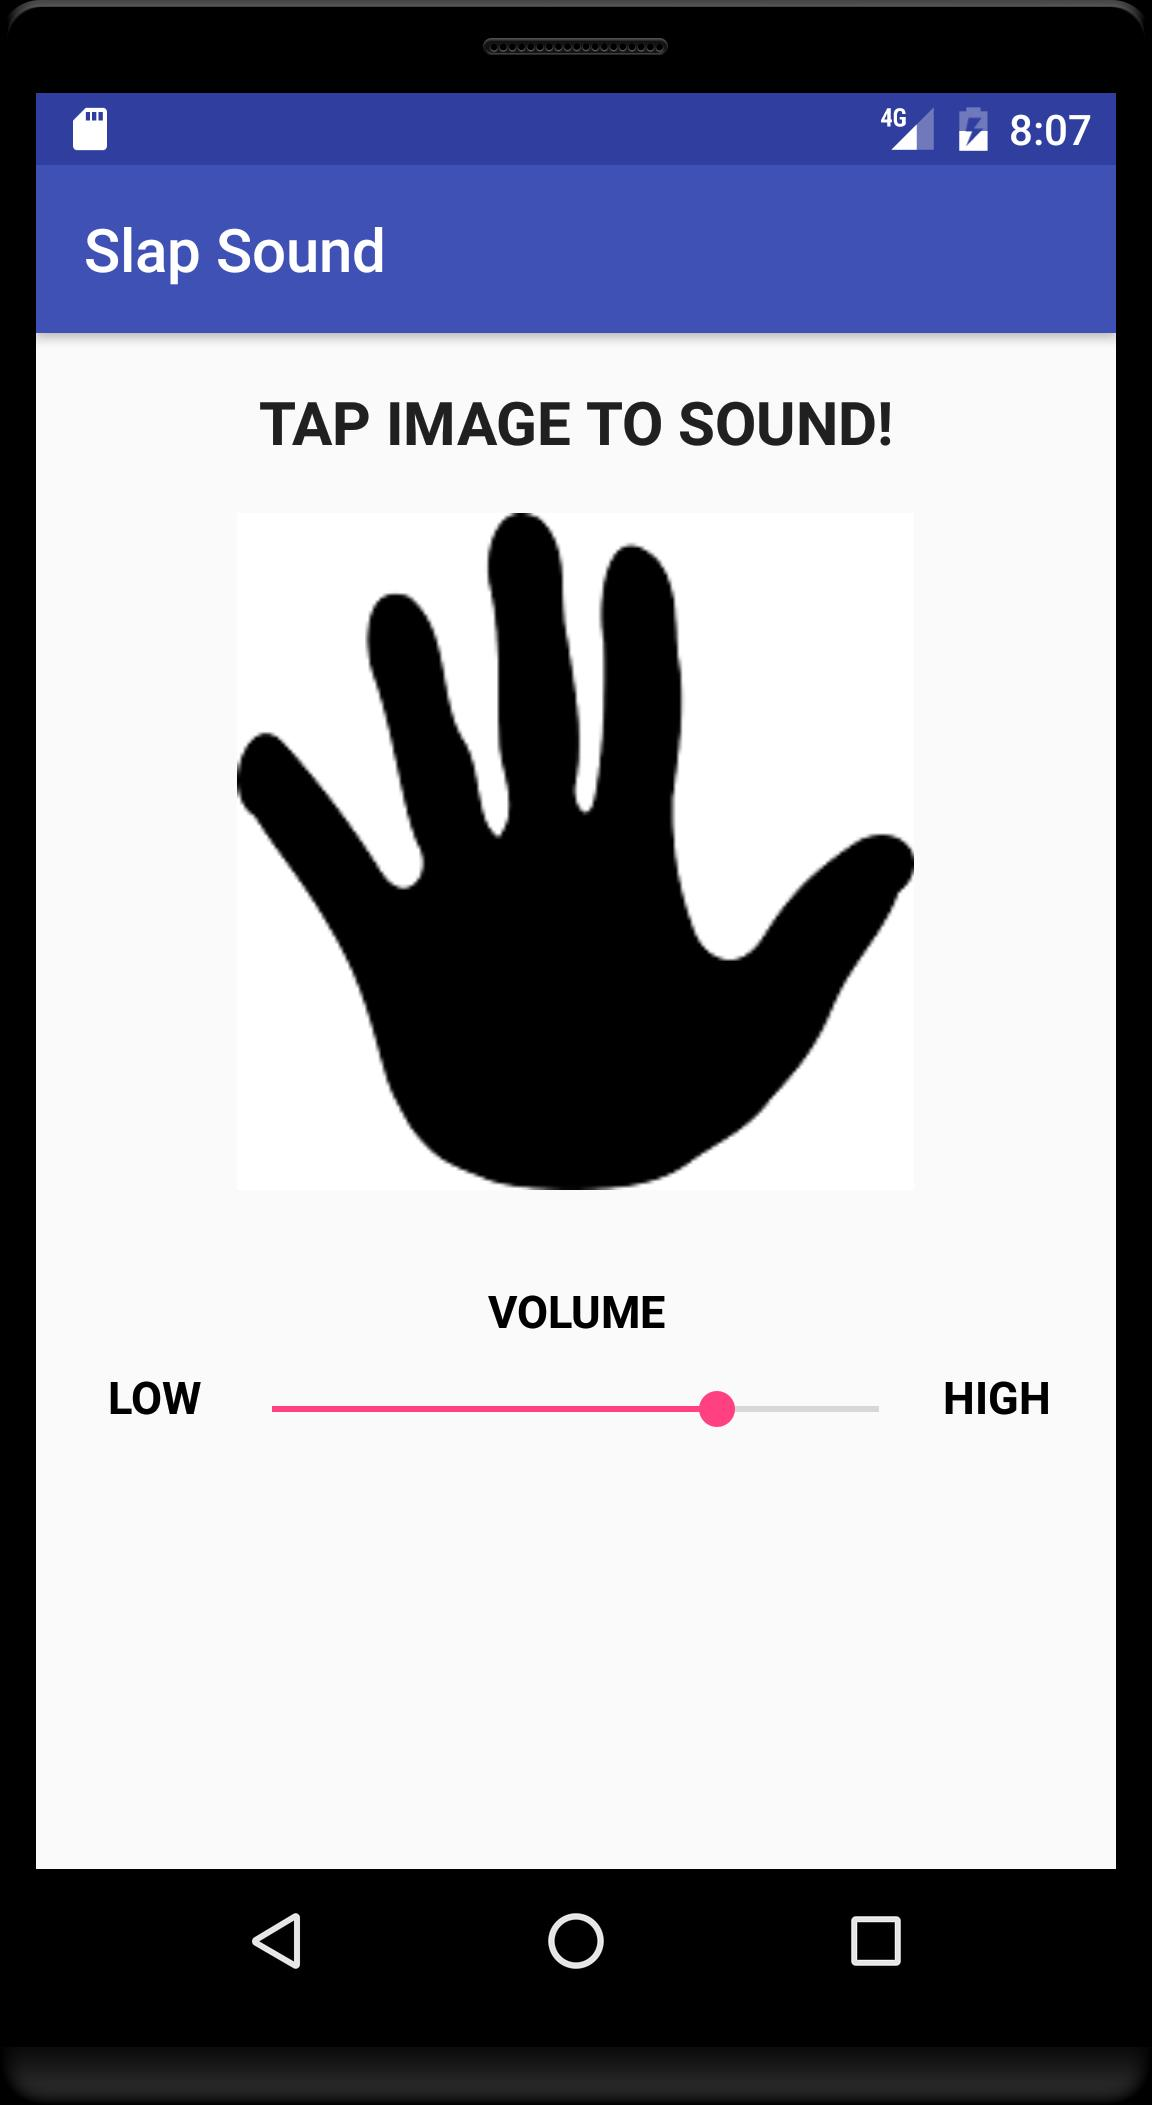 Slap Sound for Android - APK Download